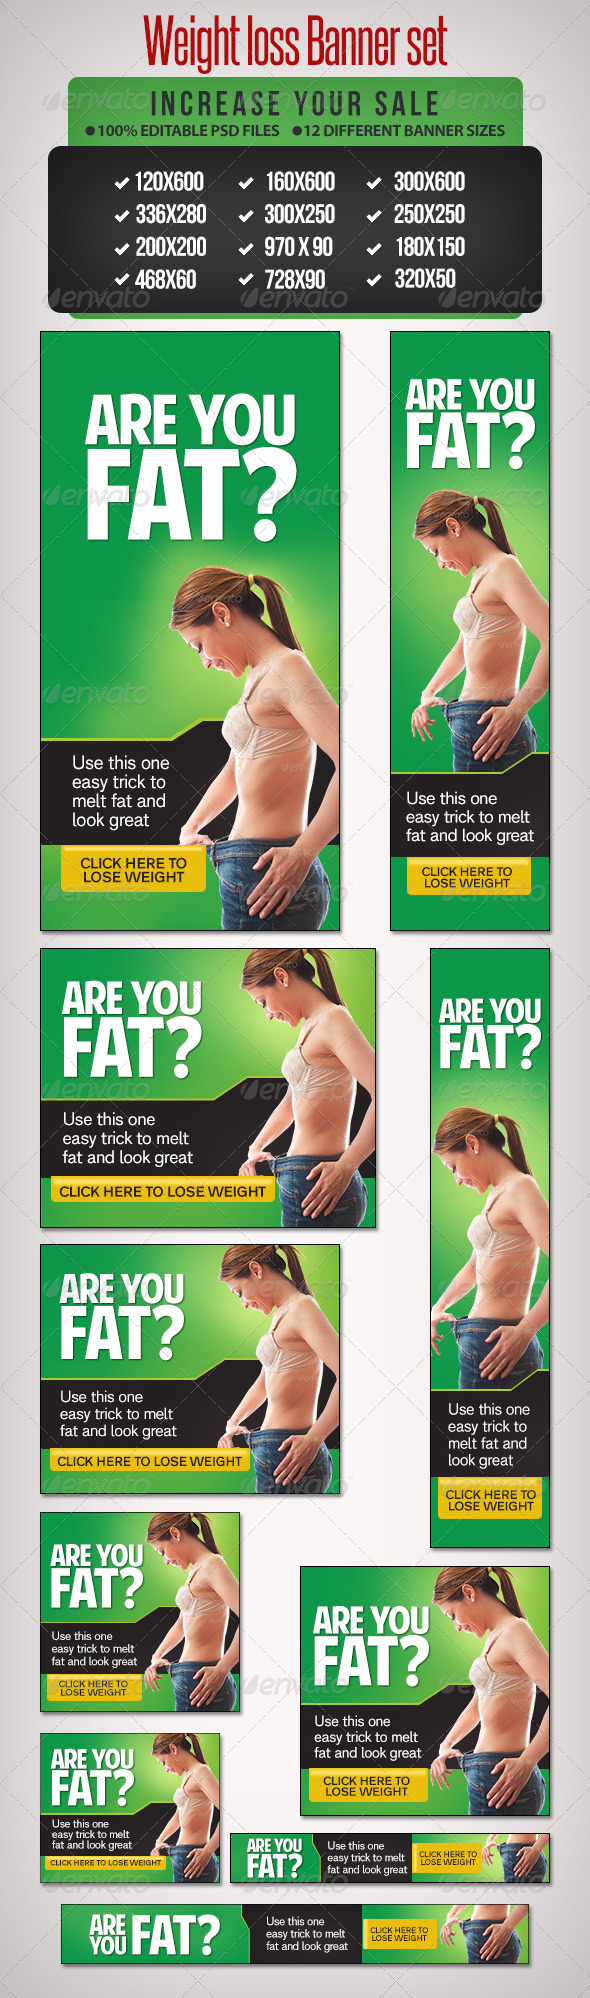 GraphicRiver Weight Loss Banner Set 10 6698132